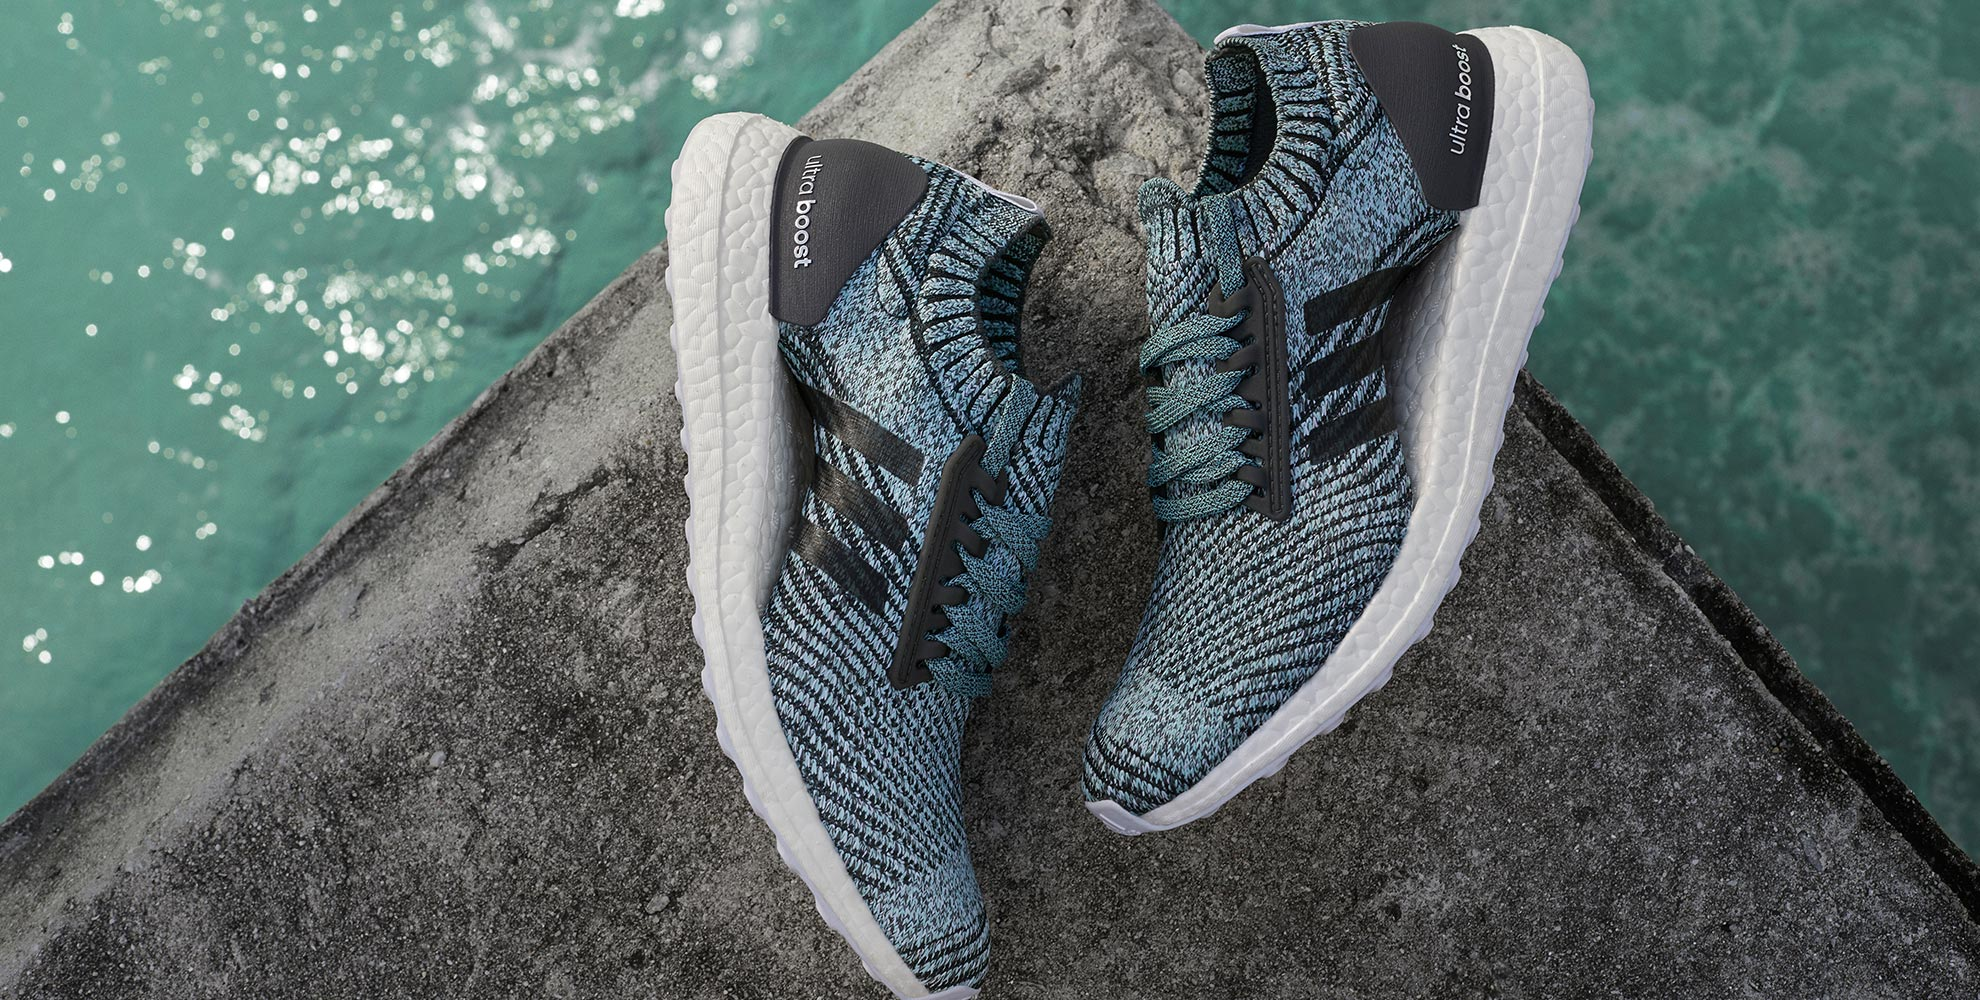 timeless design e0bf2 d2ae0 adidas UltraBOOST x Parley for the Oceans – CROSSOVER ONLINE